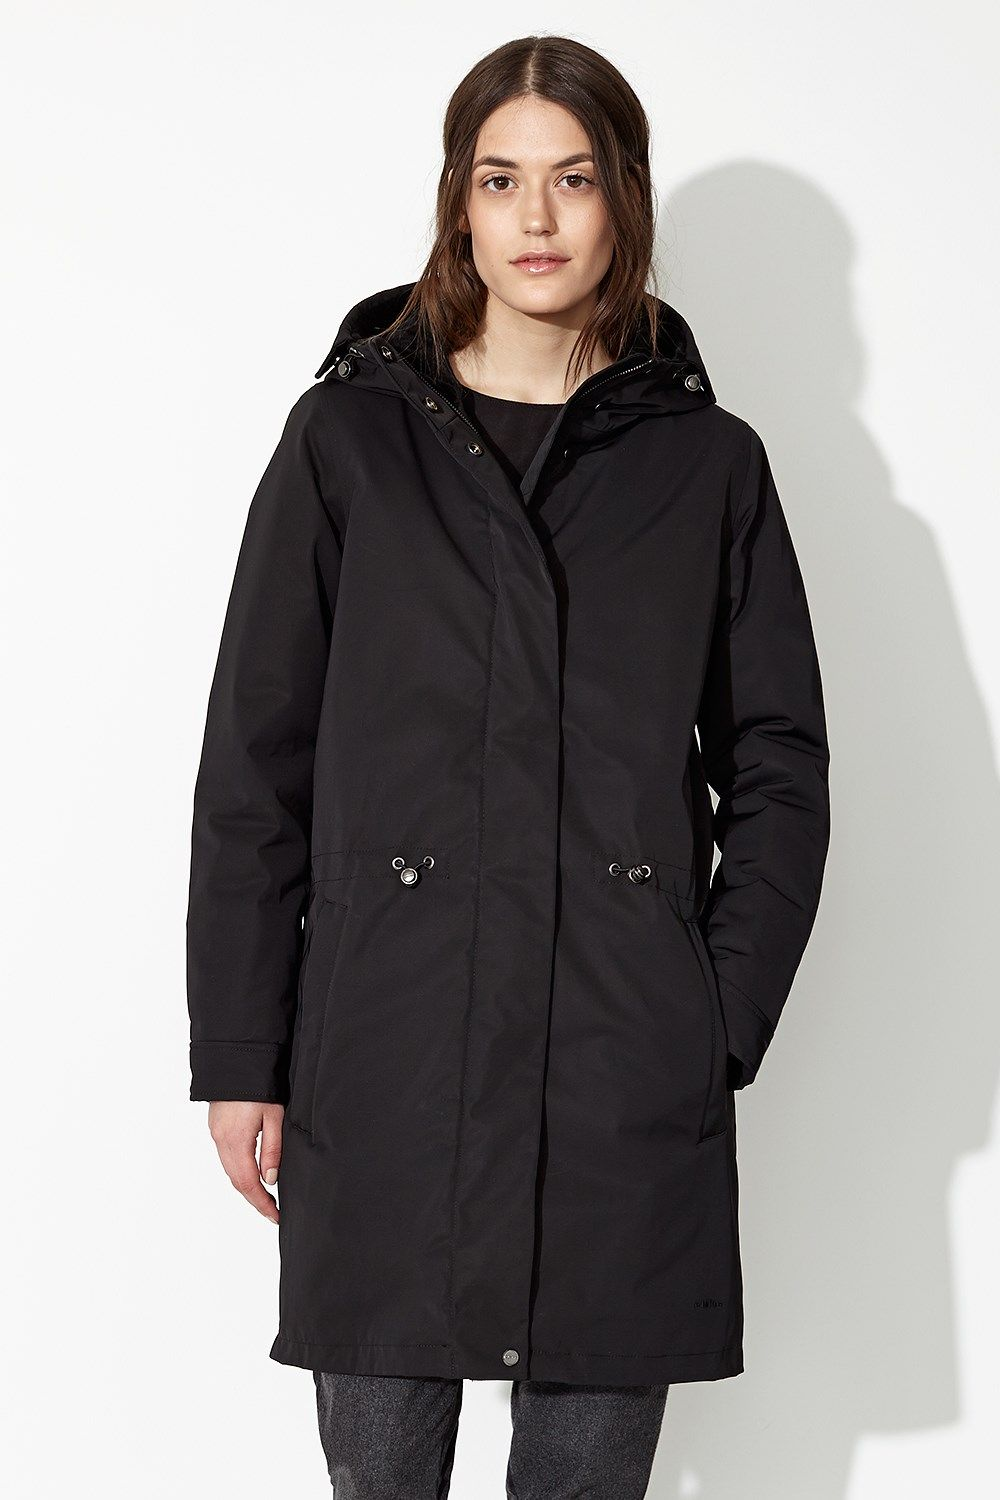 Elvine Astrid Jacket Black - Elvine Shop | Winter Coats ...